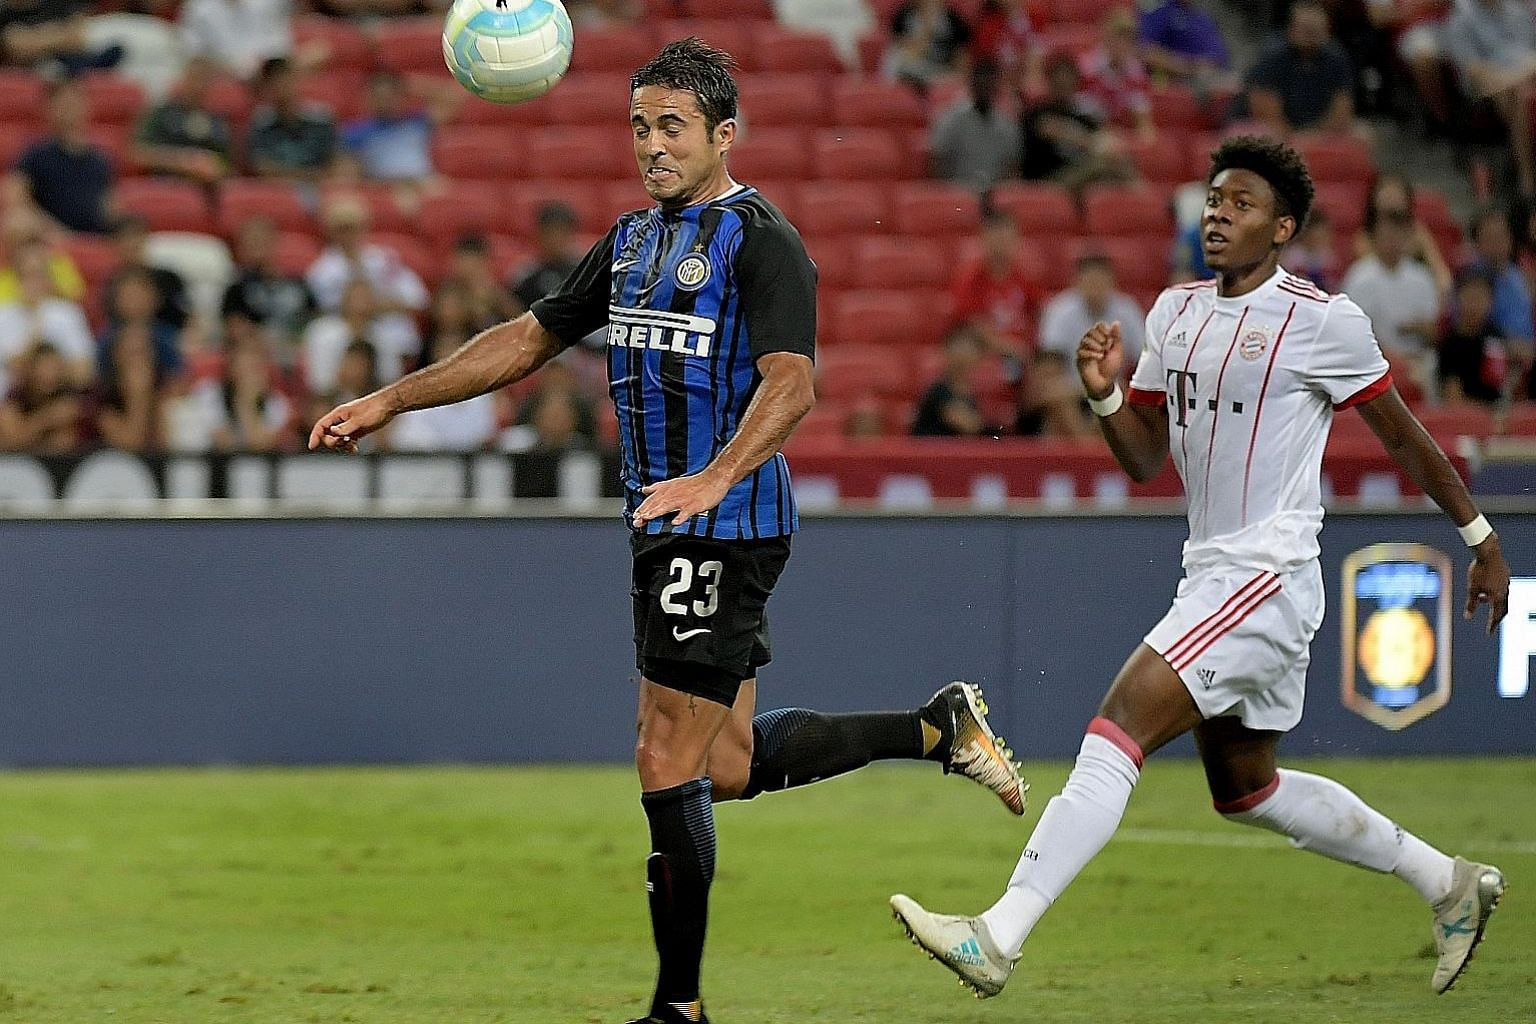 Inter's Eder Martins heading in his second goal against Bayern Munich last night as David Alaba looks on.